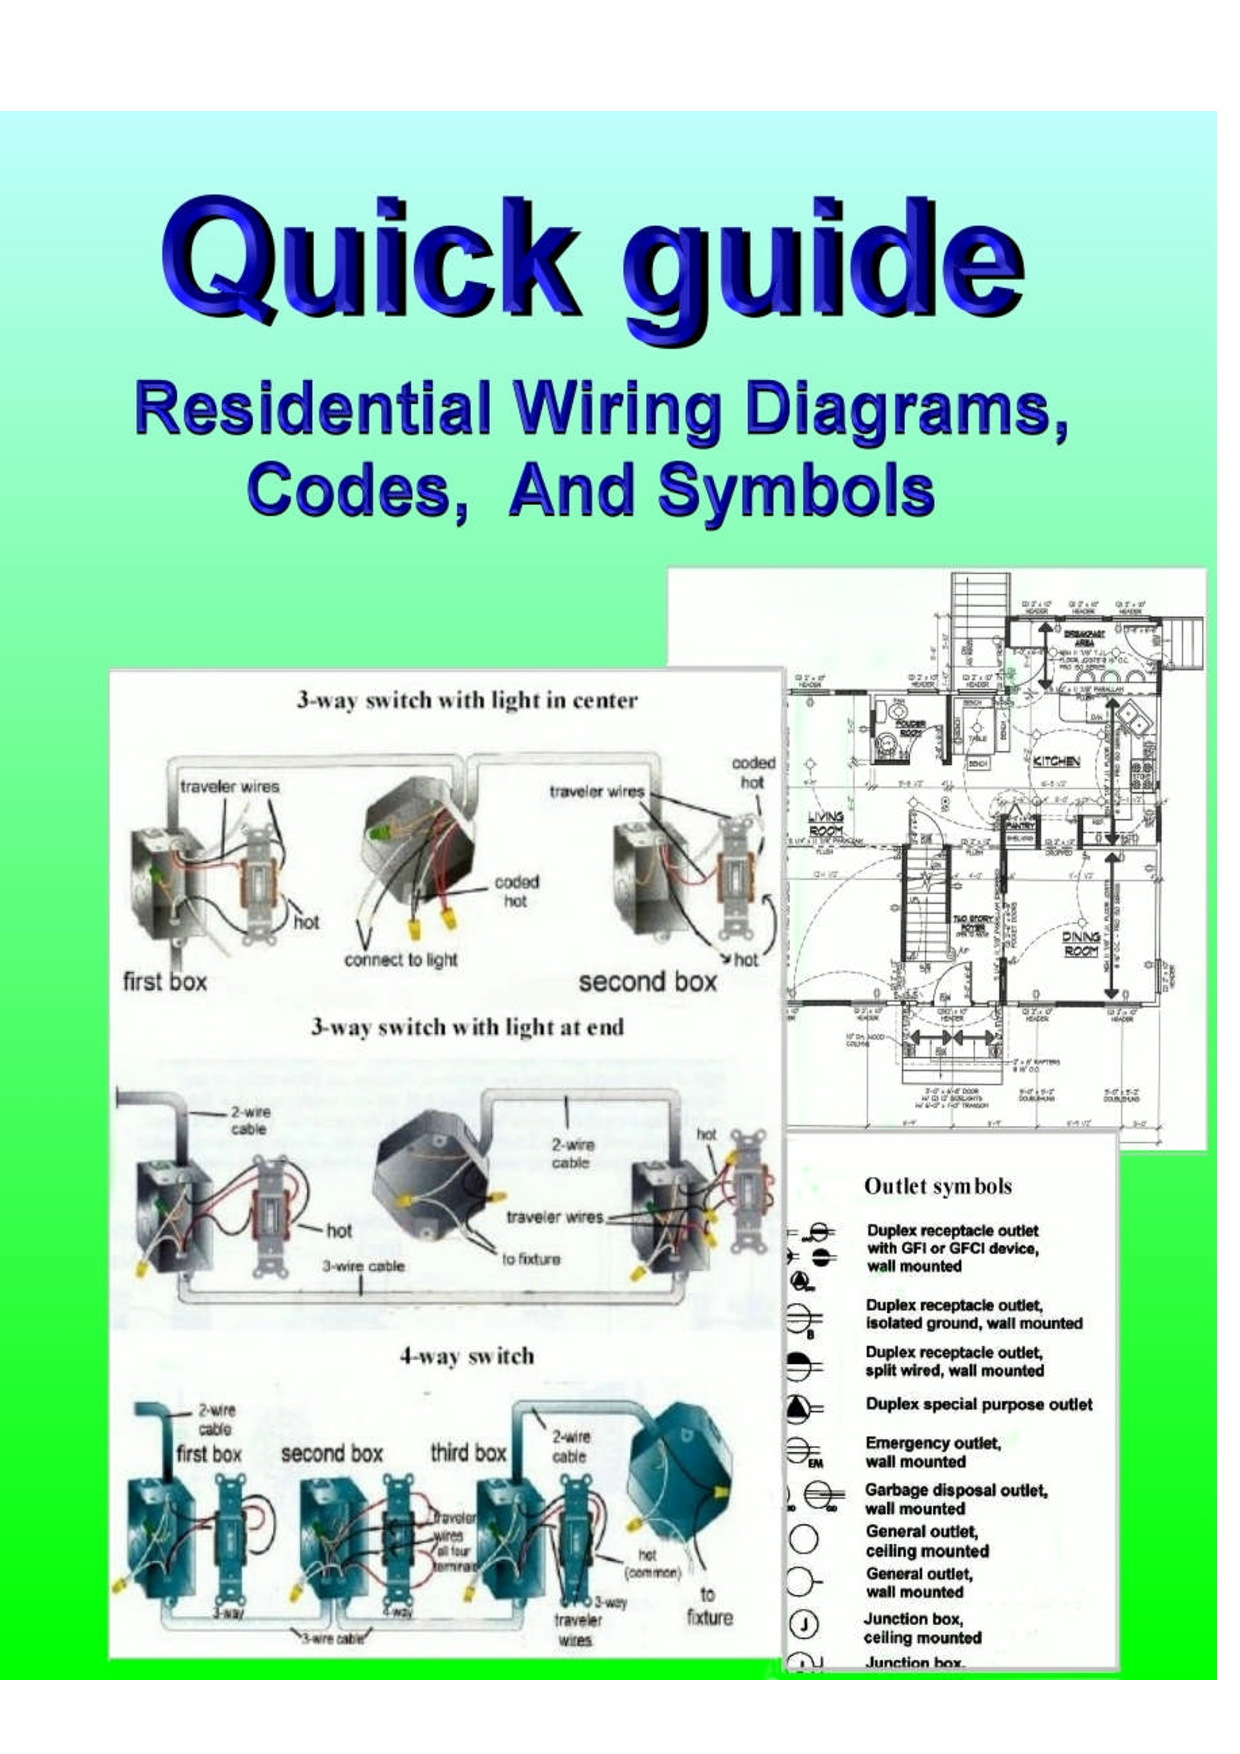 Residential Wiring Guide Quebec: Pin on DIYrh:pinterest.com,Design